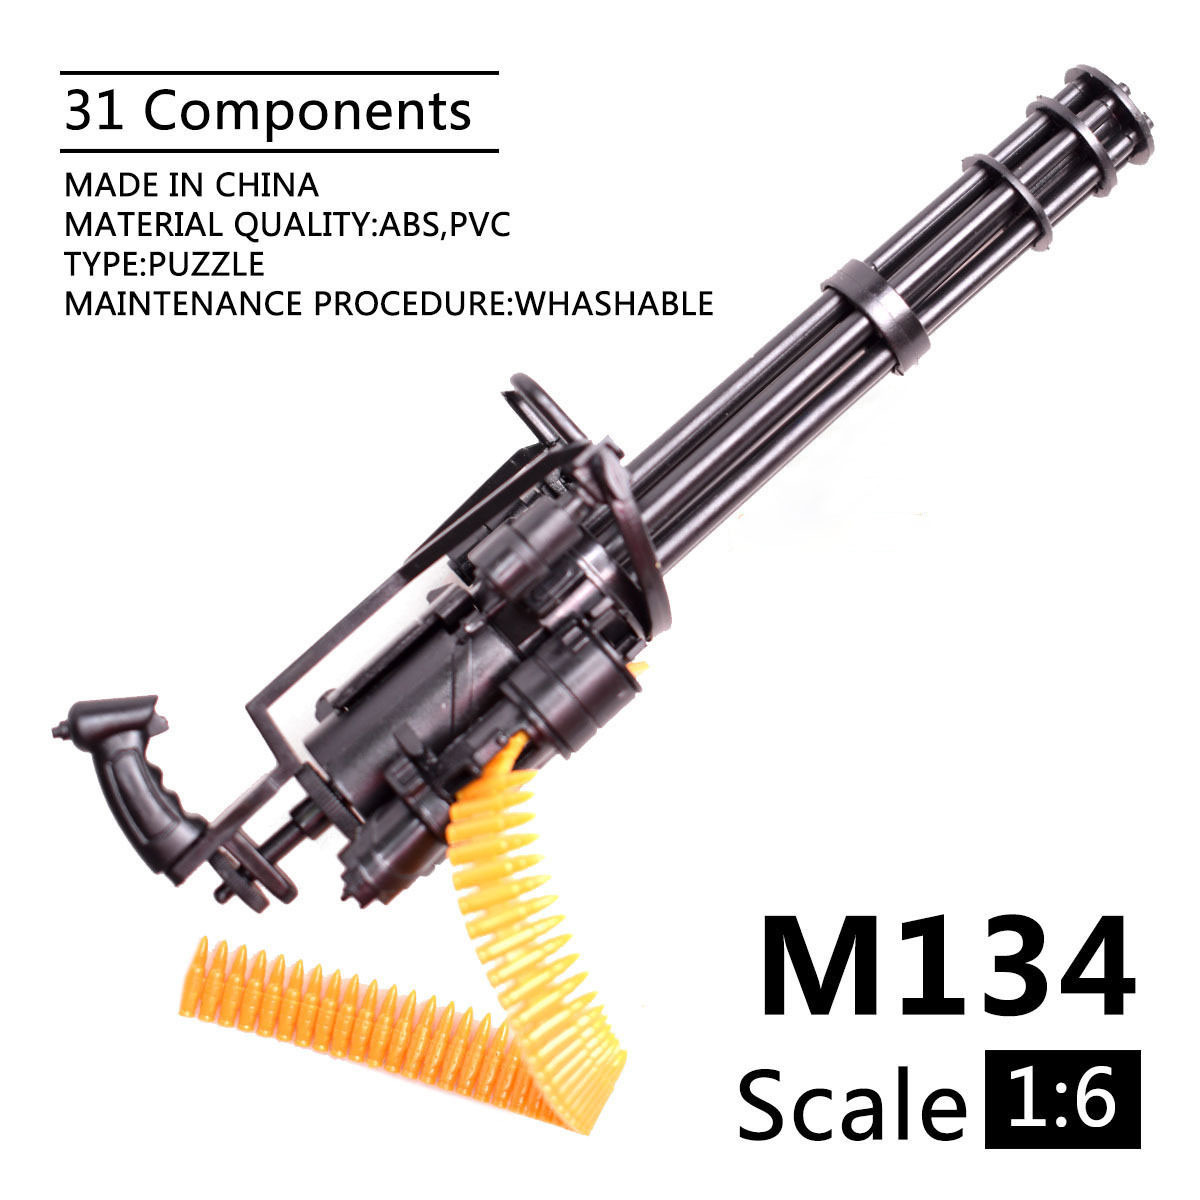 Gatling 4D Assembly Toy Gun, 1:6 Toy Gun,1/6 M134 Minigun Gatling Toy Gun